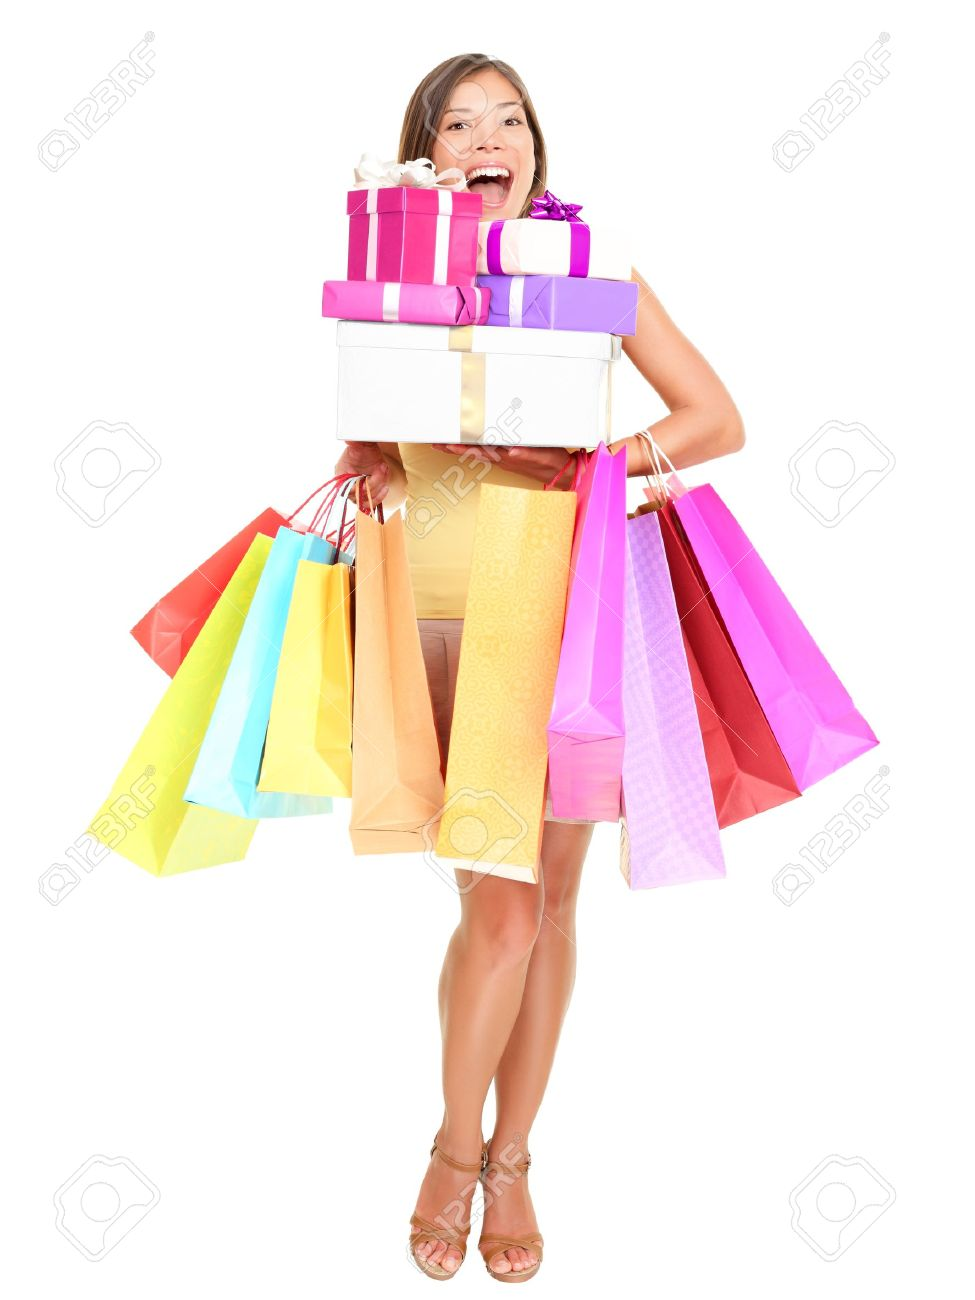 Shopper. Shopaholic shopping woman holding many shopping bags excited. Isolated portrait of young woman in full body on white background. Stock Photo - 9607538